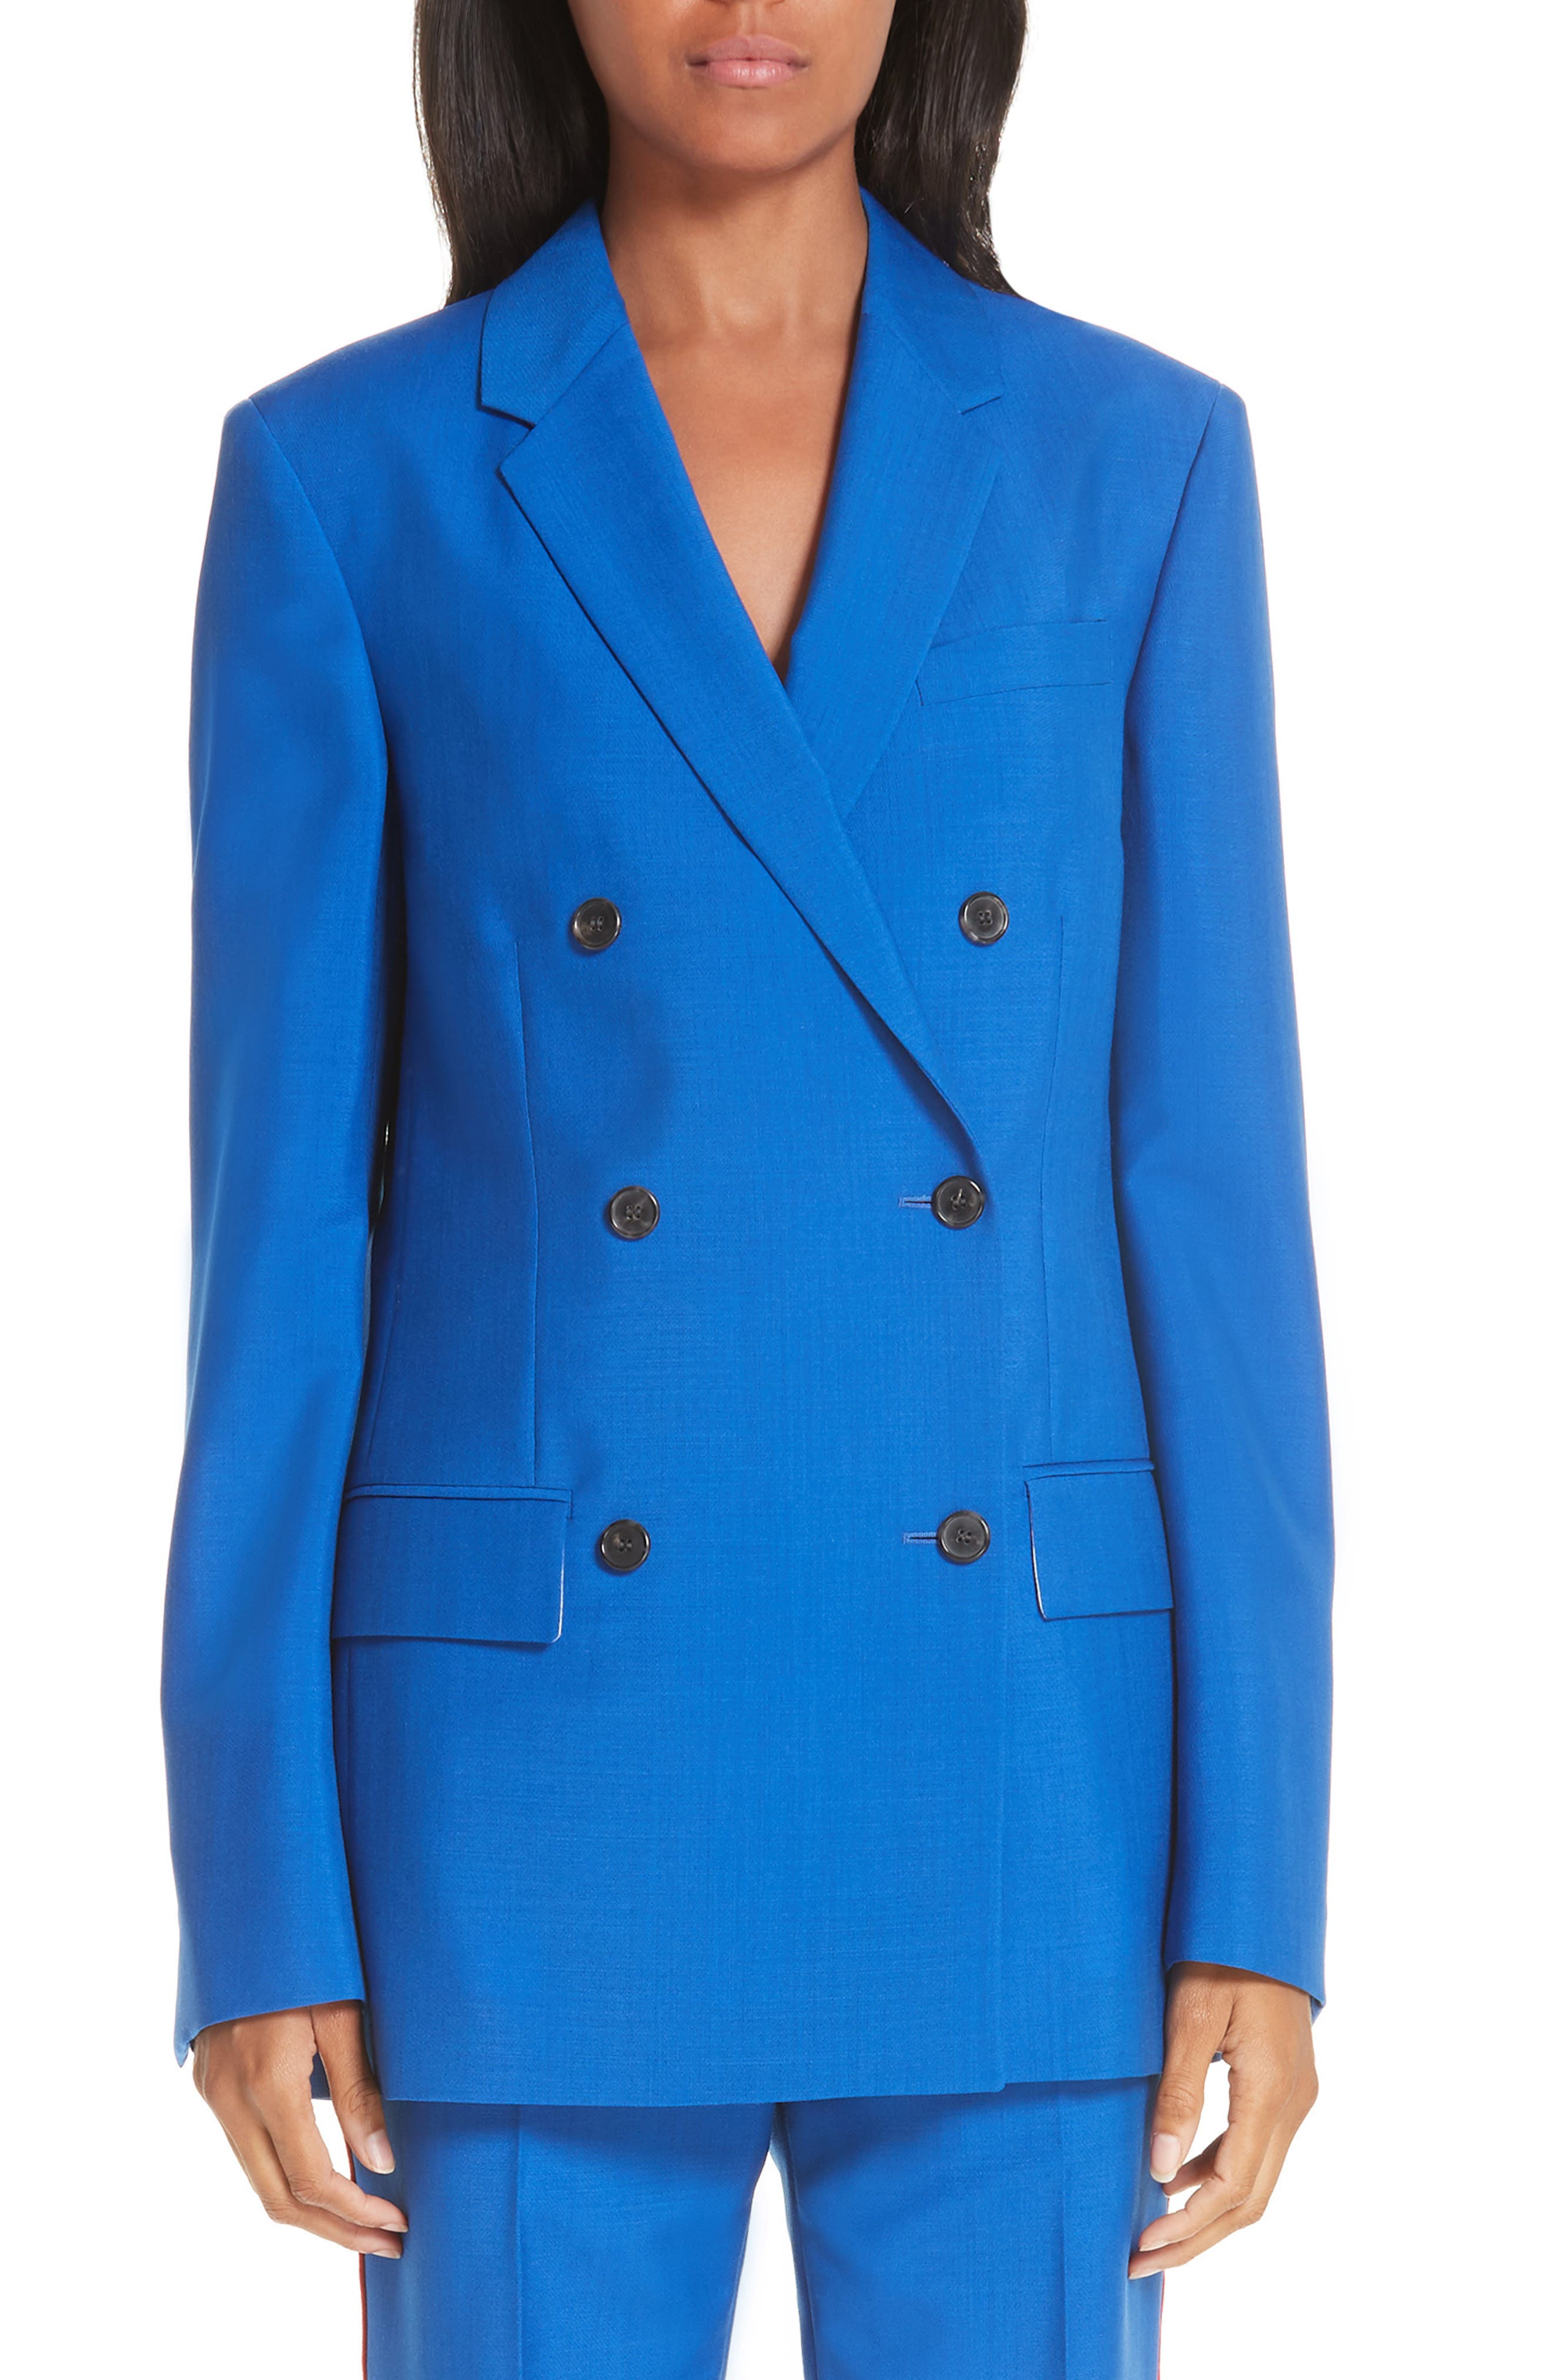 CALVIN KLEIN 205W39NYC, Mohair & Wool Double Breasted Blazer, Main thumbnail 1, color, BRIGHT BLUE